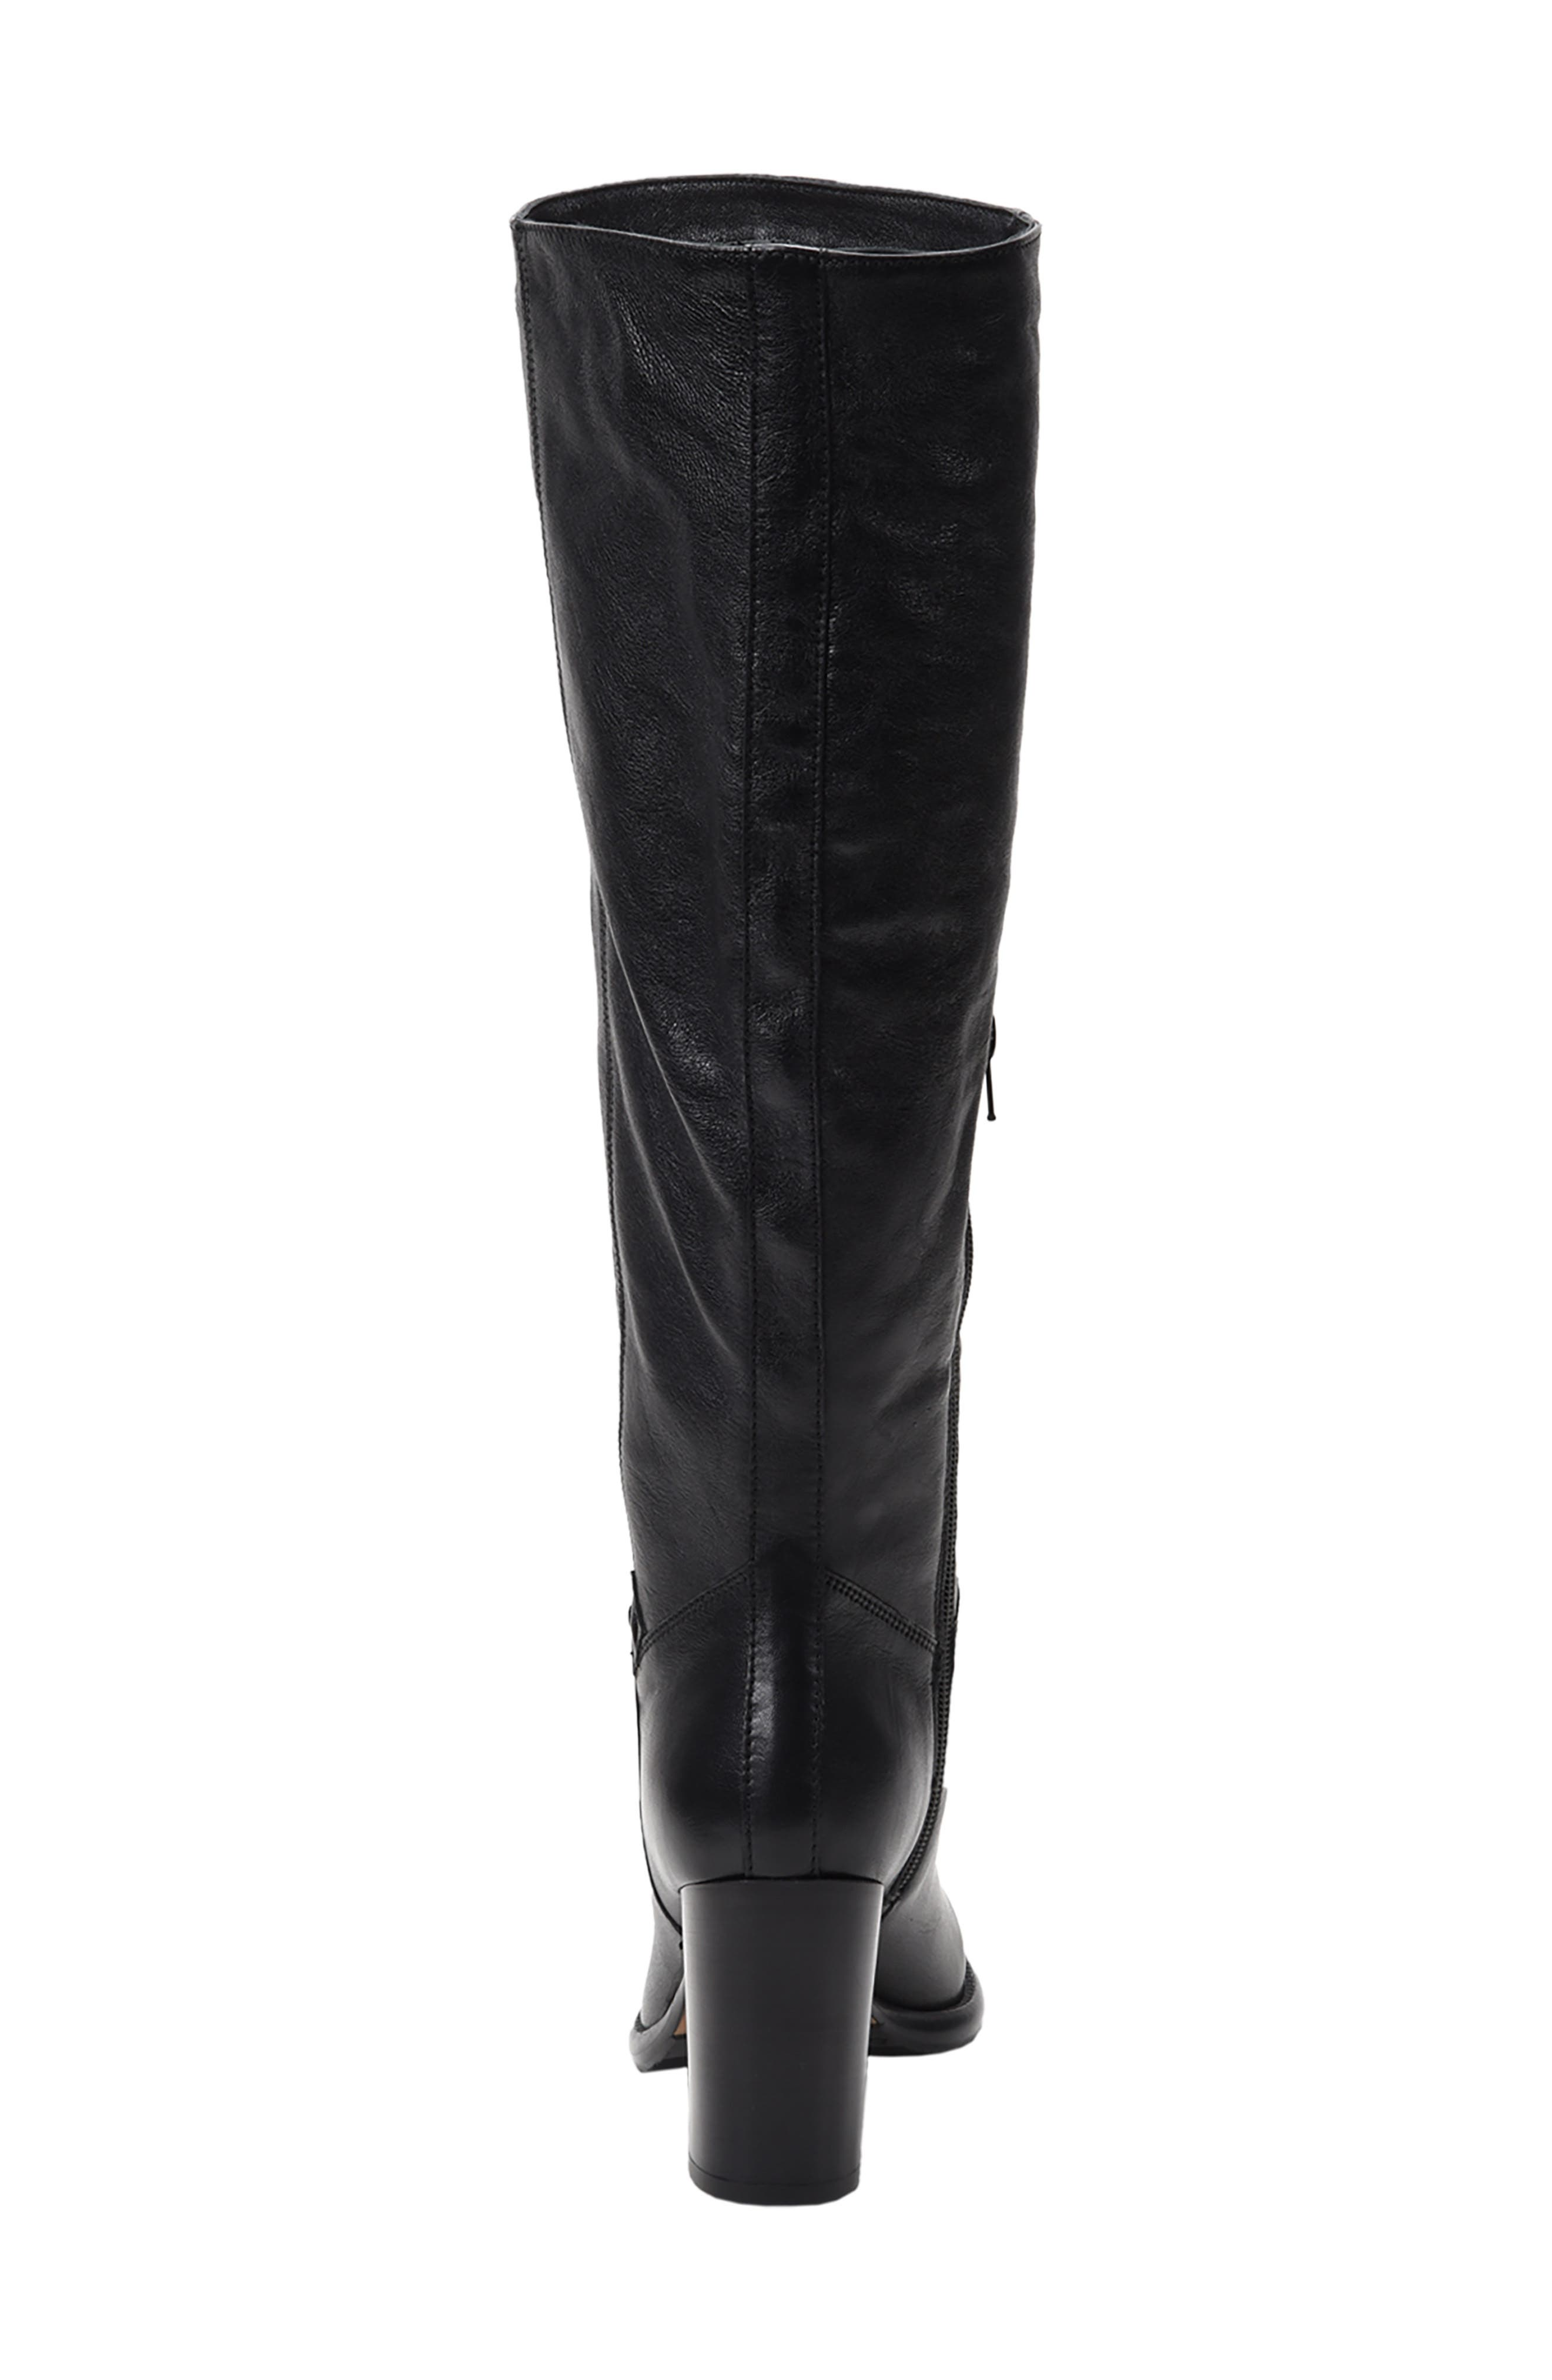 ROSS & SNOW, Michela SP Waterproof Genuine Shearling Lined Boot, Alternate thumbnail 6, color, BLACK METALLIC LEATHER